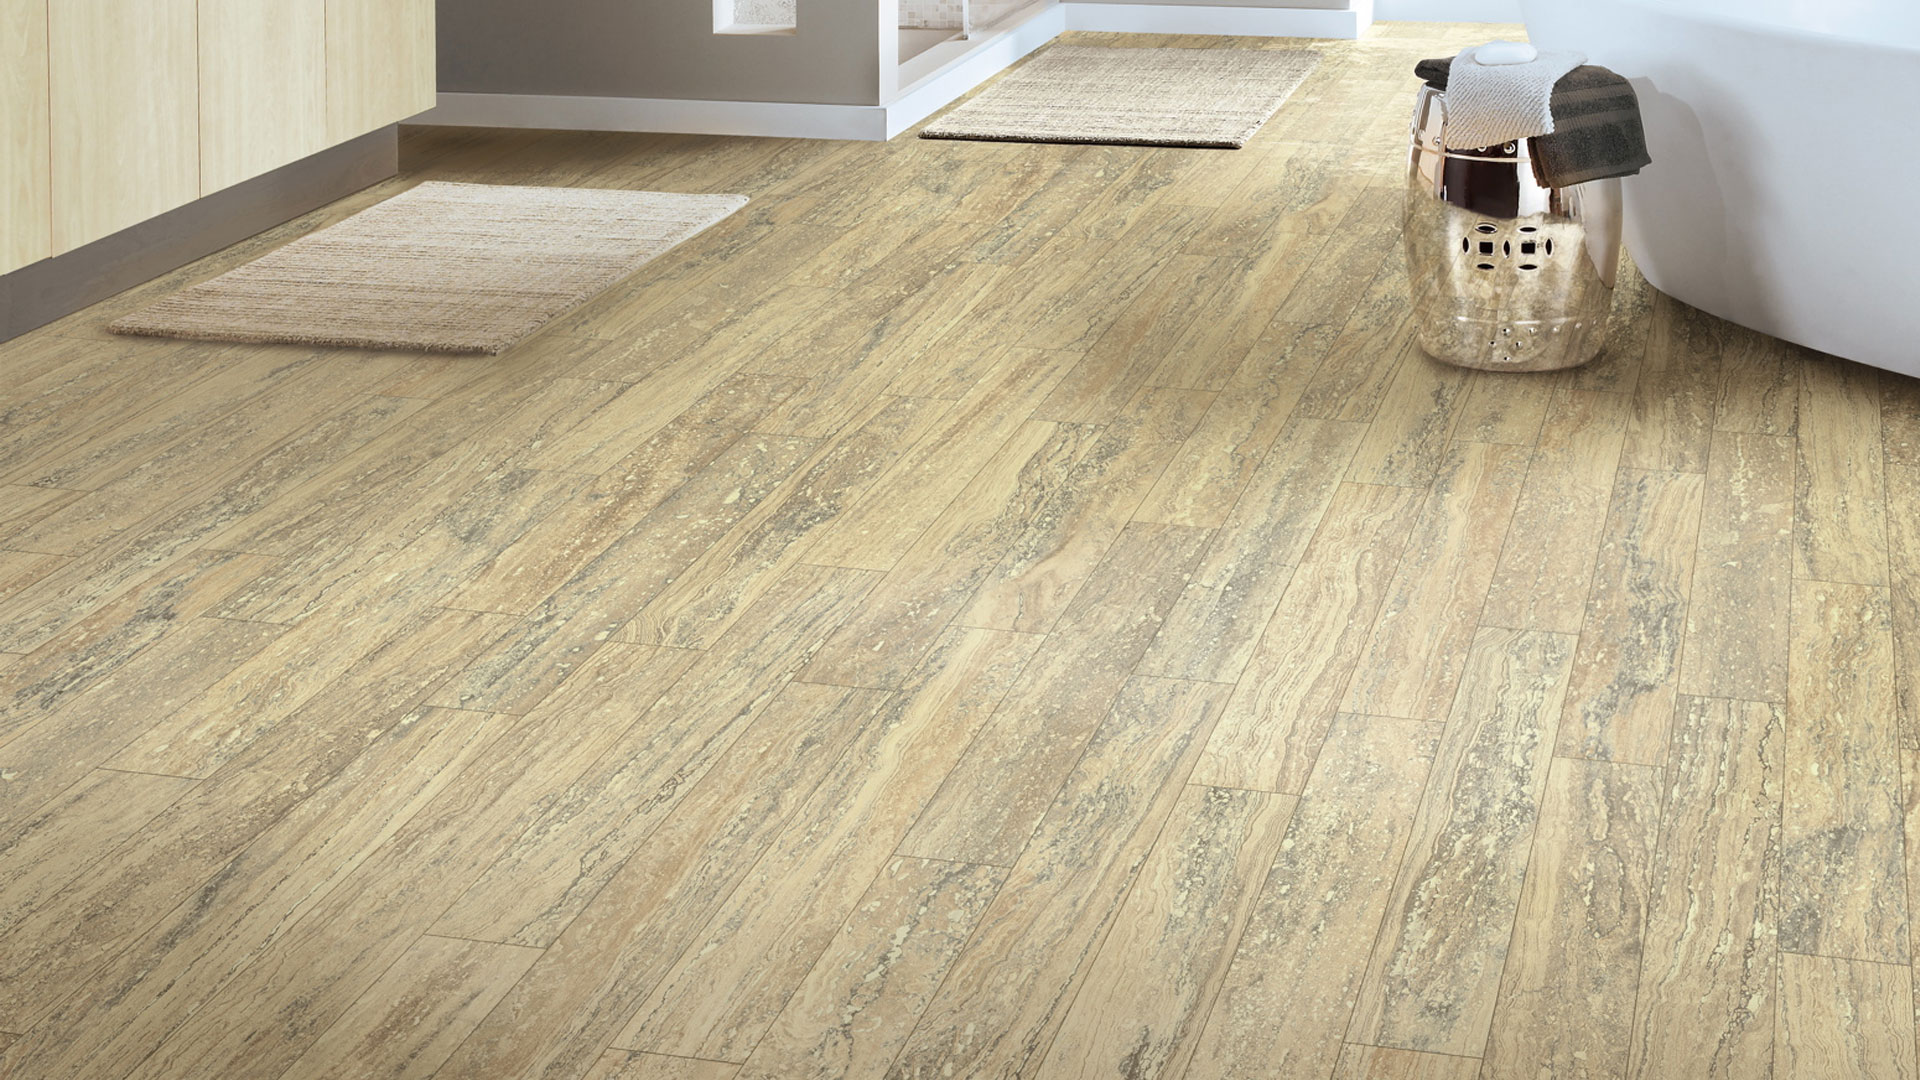 Resilient flooring vinyl sheet floors from armstrong for Linoleum wood flooring